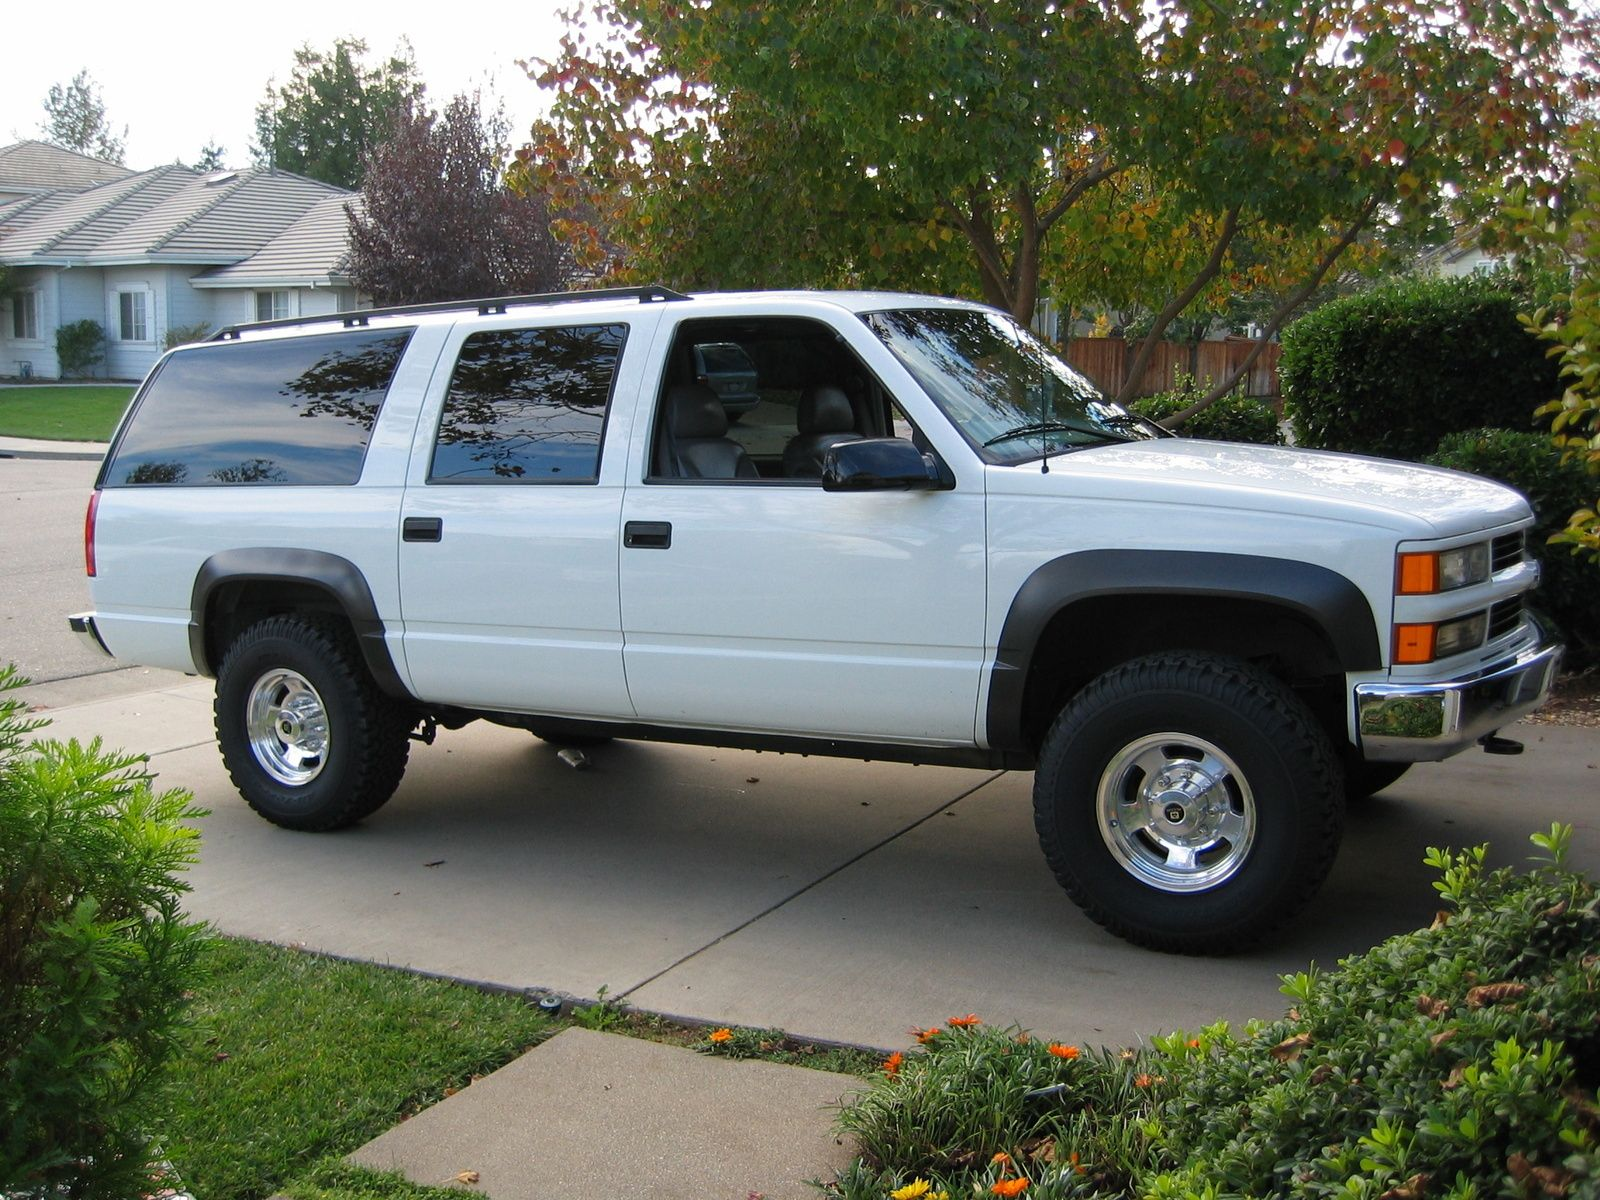 1999 Chevy Suburban K2500 This Is The 3 4 Ton Version Good To Tow